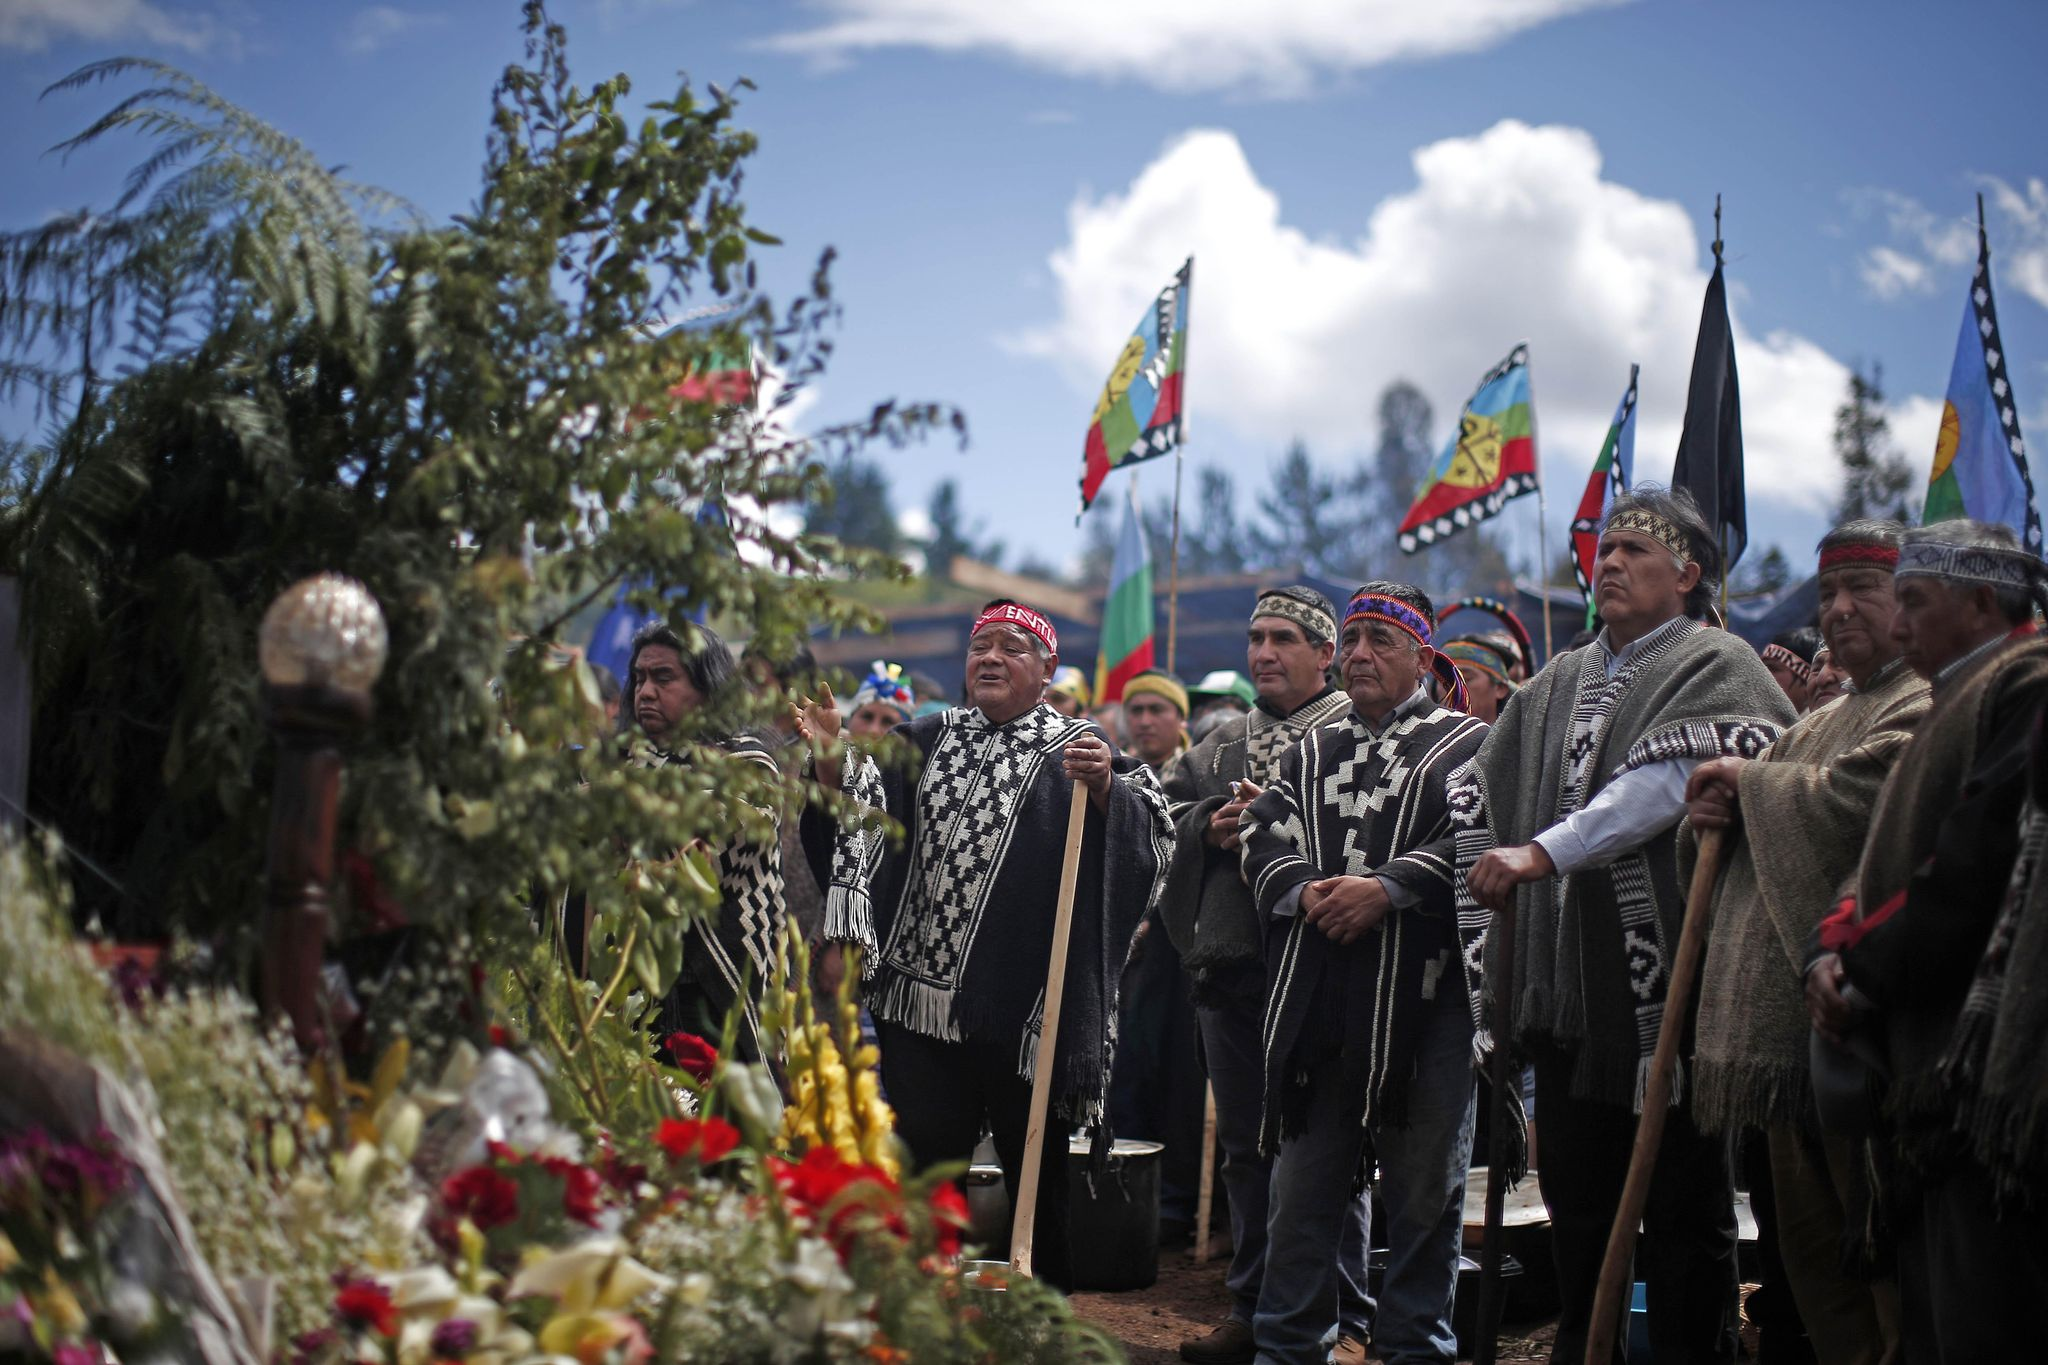 Chilean police resign over shooting of indigenous youth